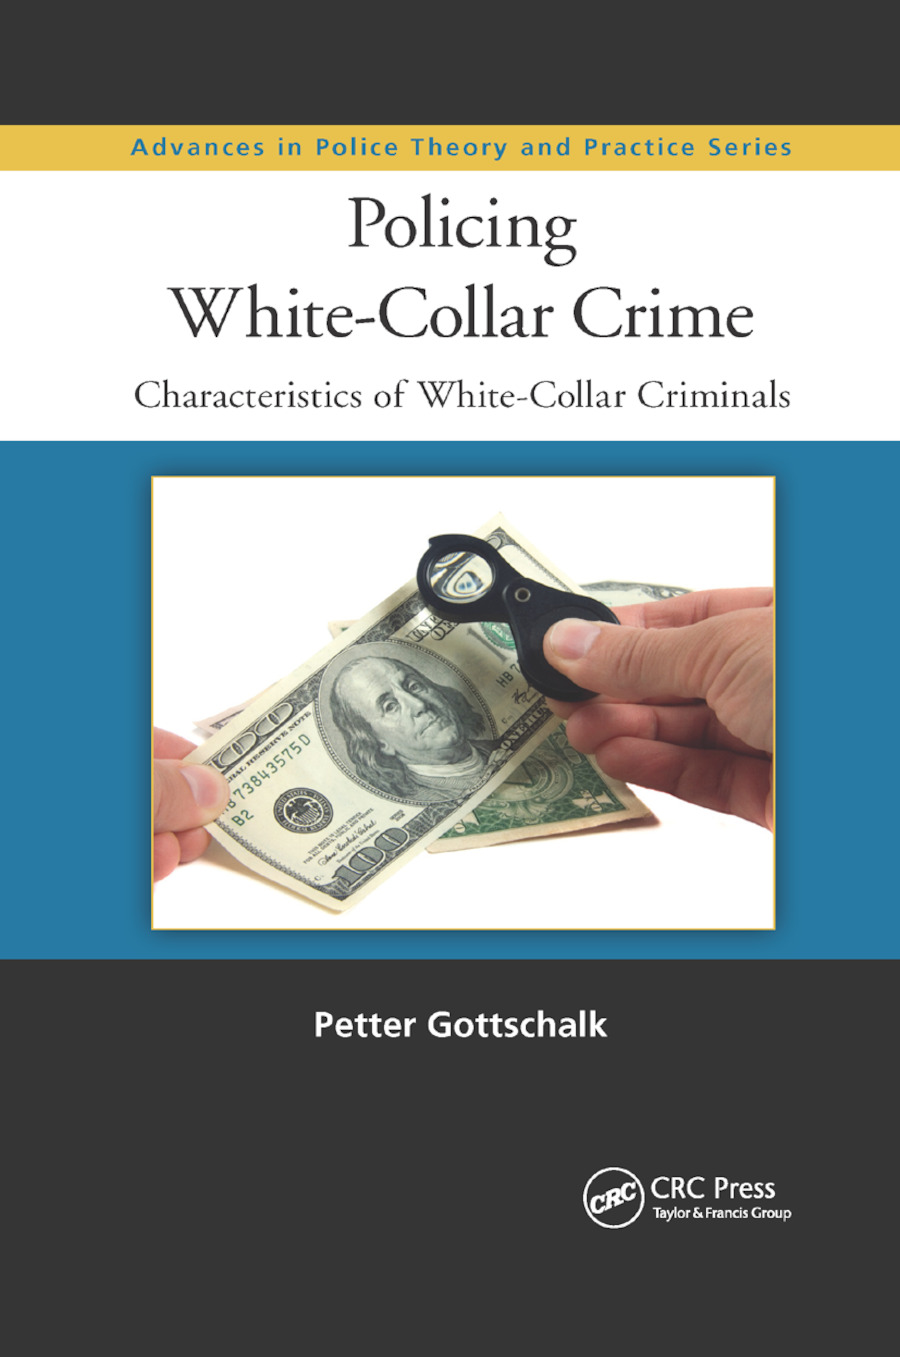 Policing White-Collar Crime: Characteristics of White-Collar Criminals book cover